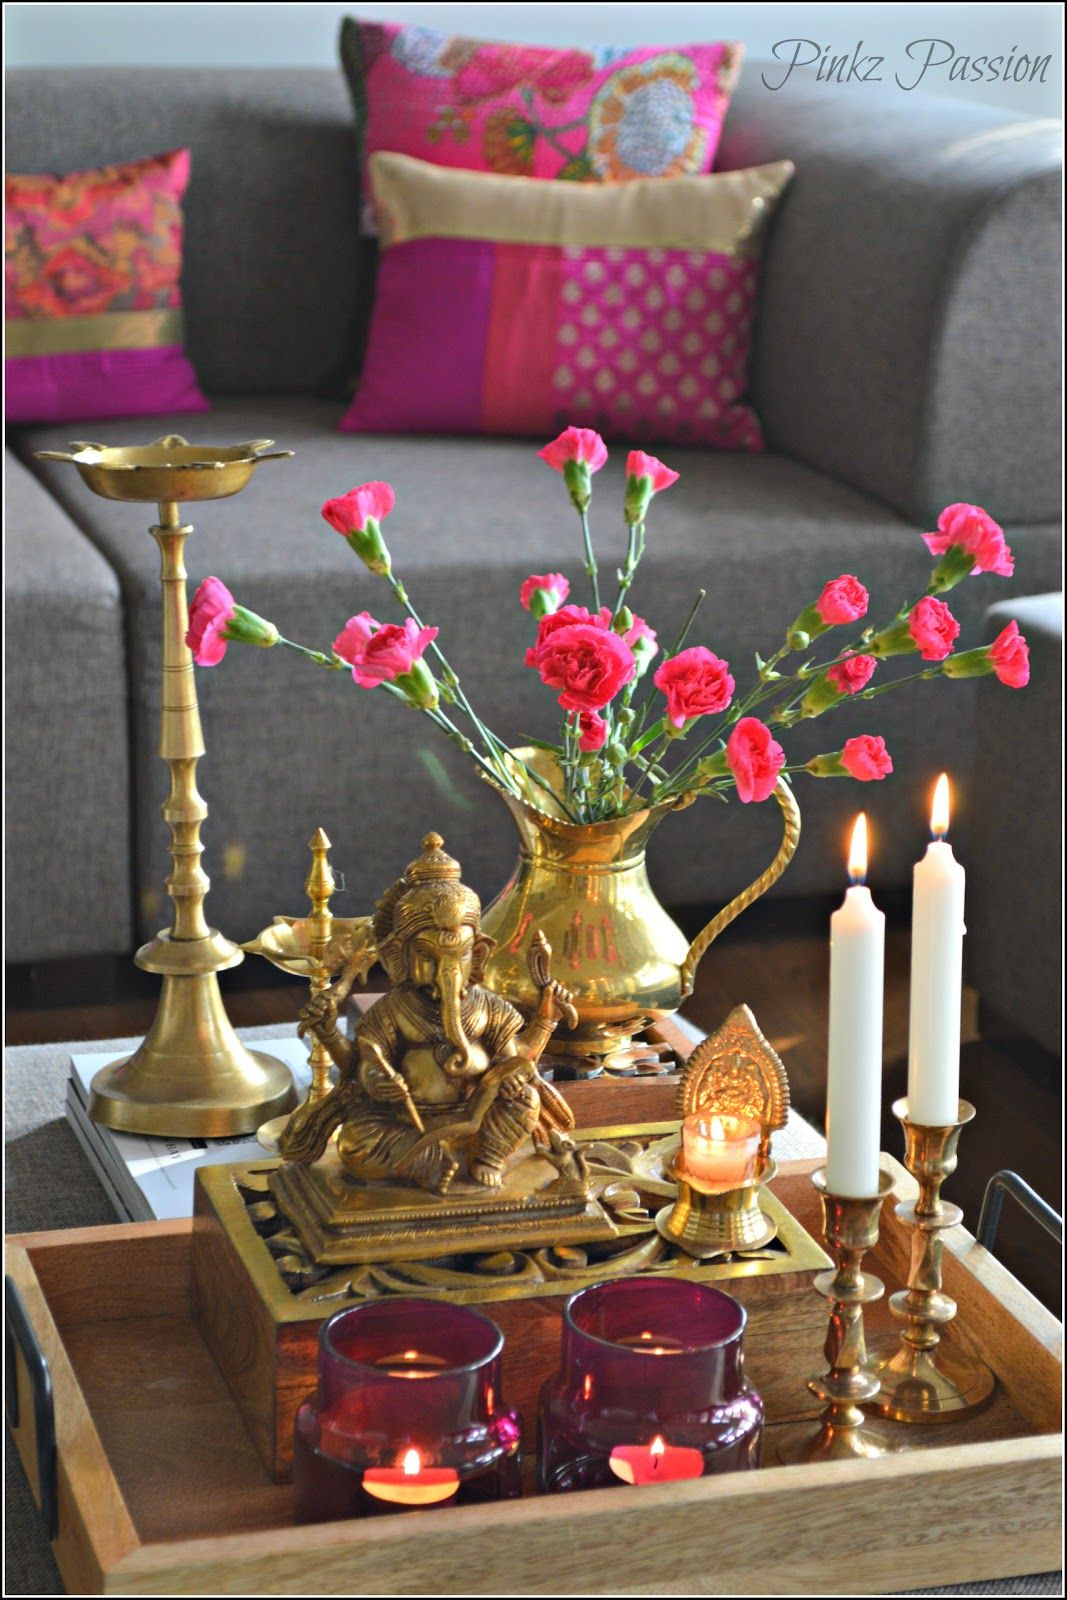 Pinkz Passion Ganesh In 2019 Indian Home Decor